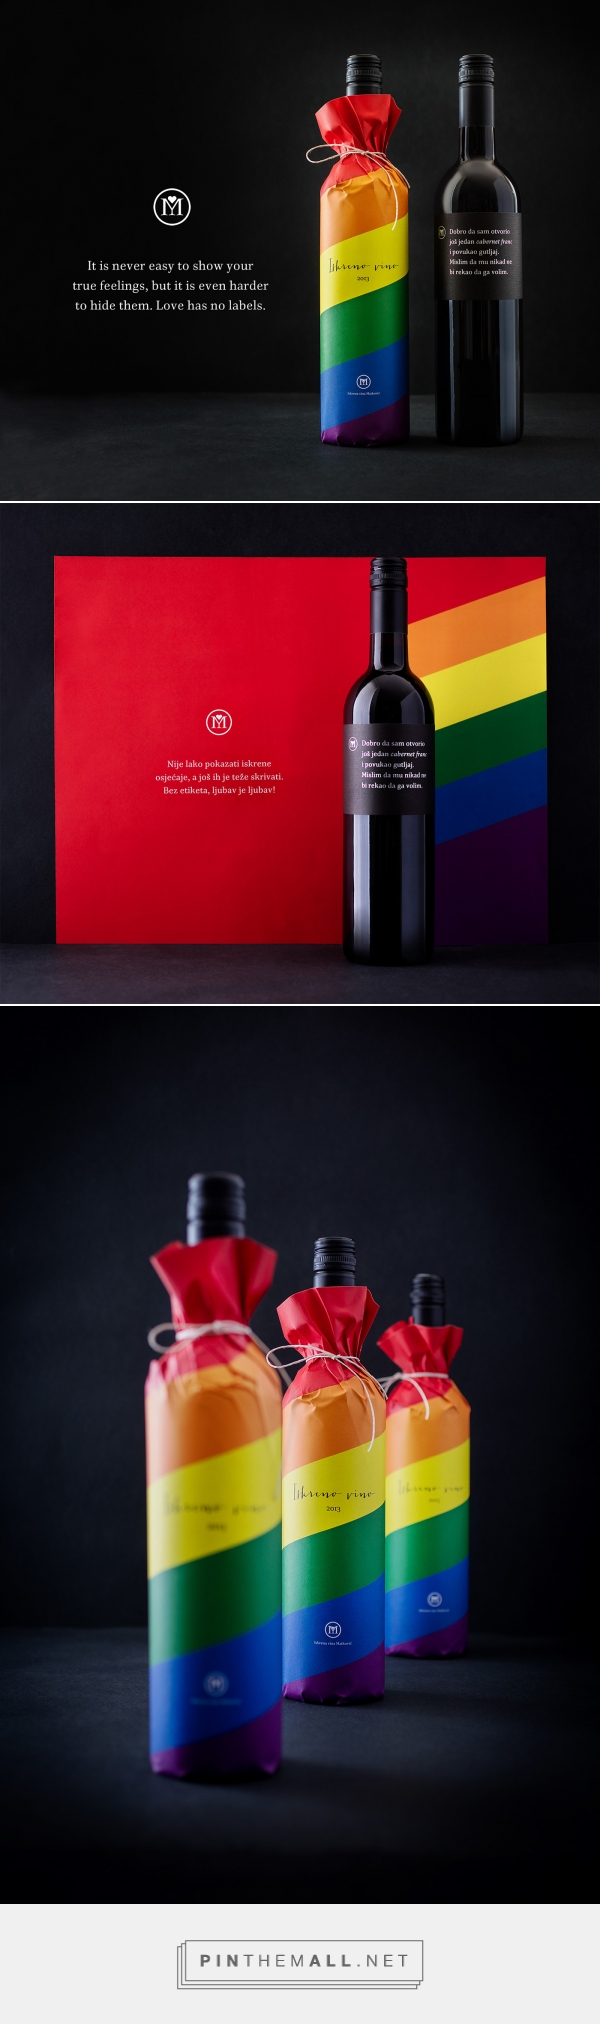 Honest Wines Pride Edition On Behance A Grouped Images Picture Packaging Labels Design Wine Packaging Packaging Design Inspiration